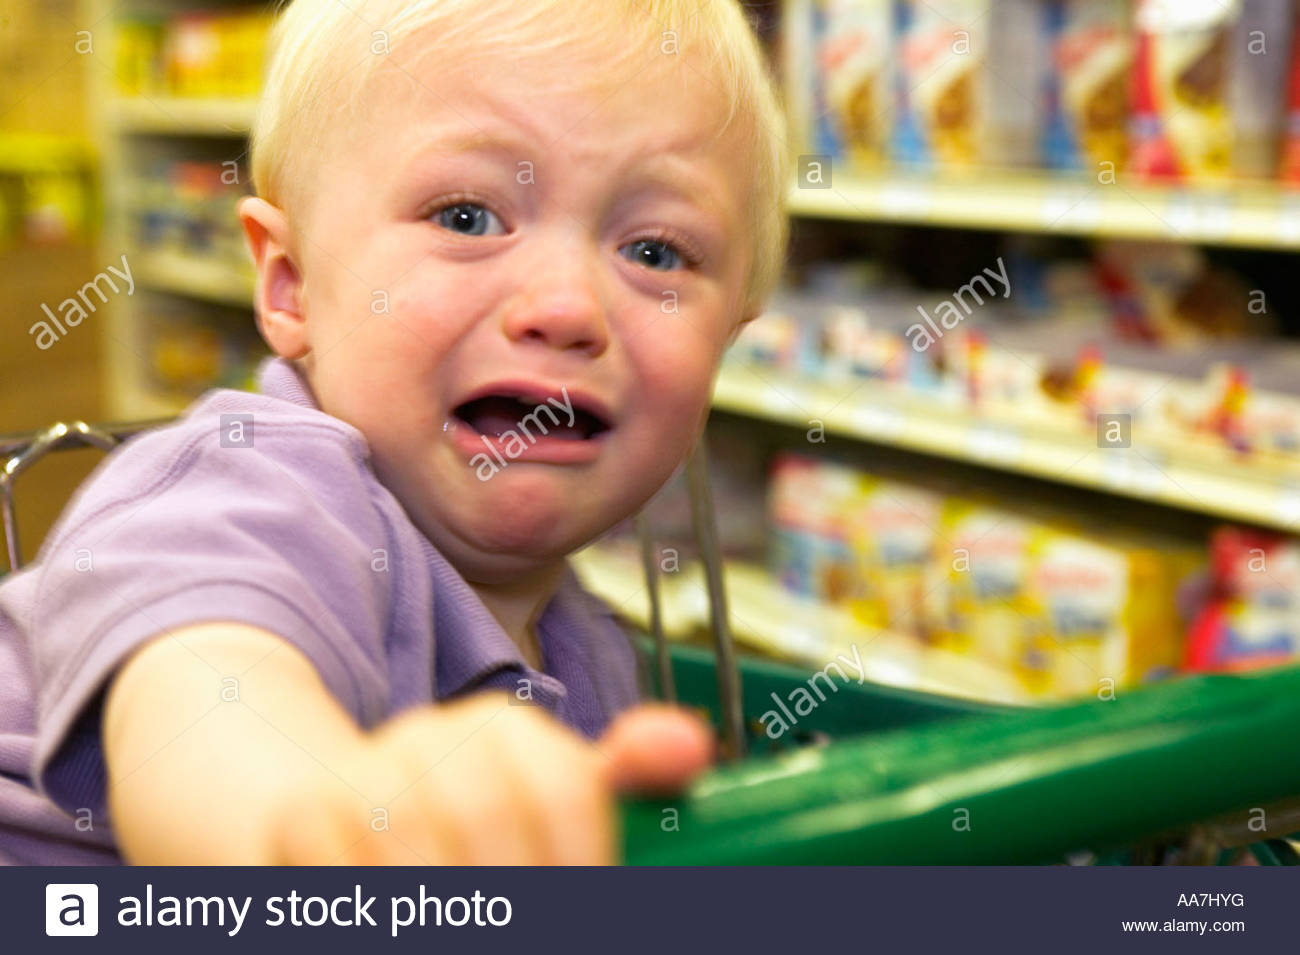 Toddler boy crying in grocery store - Stock Image